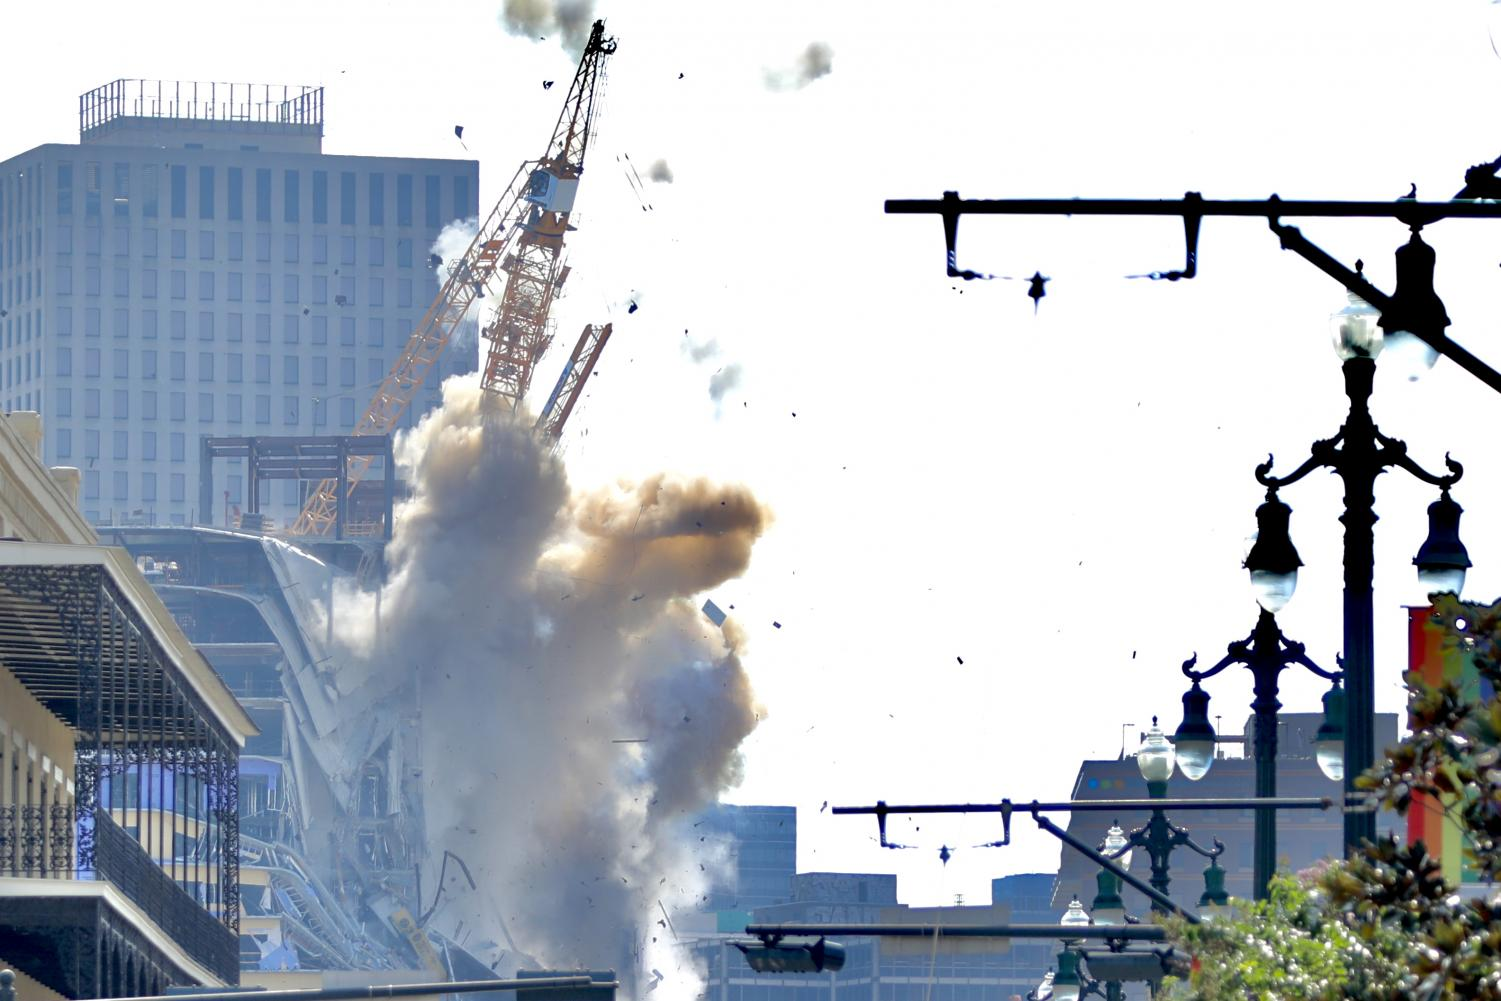 One of the unstable cranes at the Hard Rock Hotel starts to fall onto North Rampart Street after a controlled detonation on October 20, 2019. Photo credit: Andres Fuentes